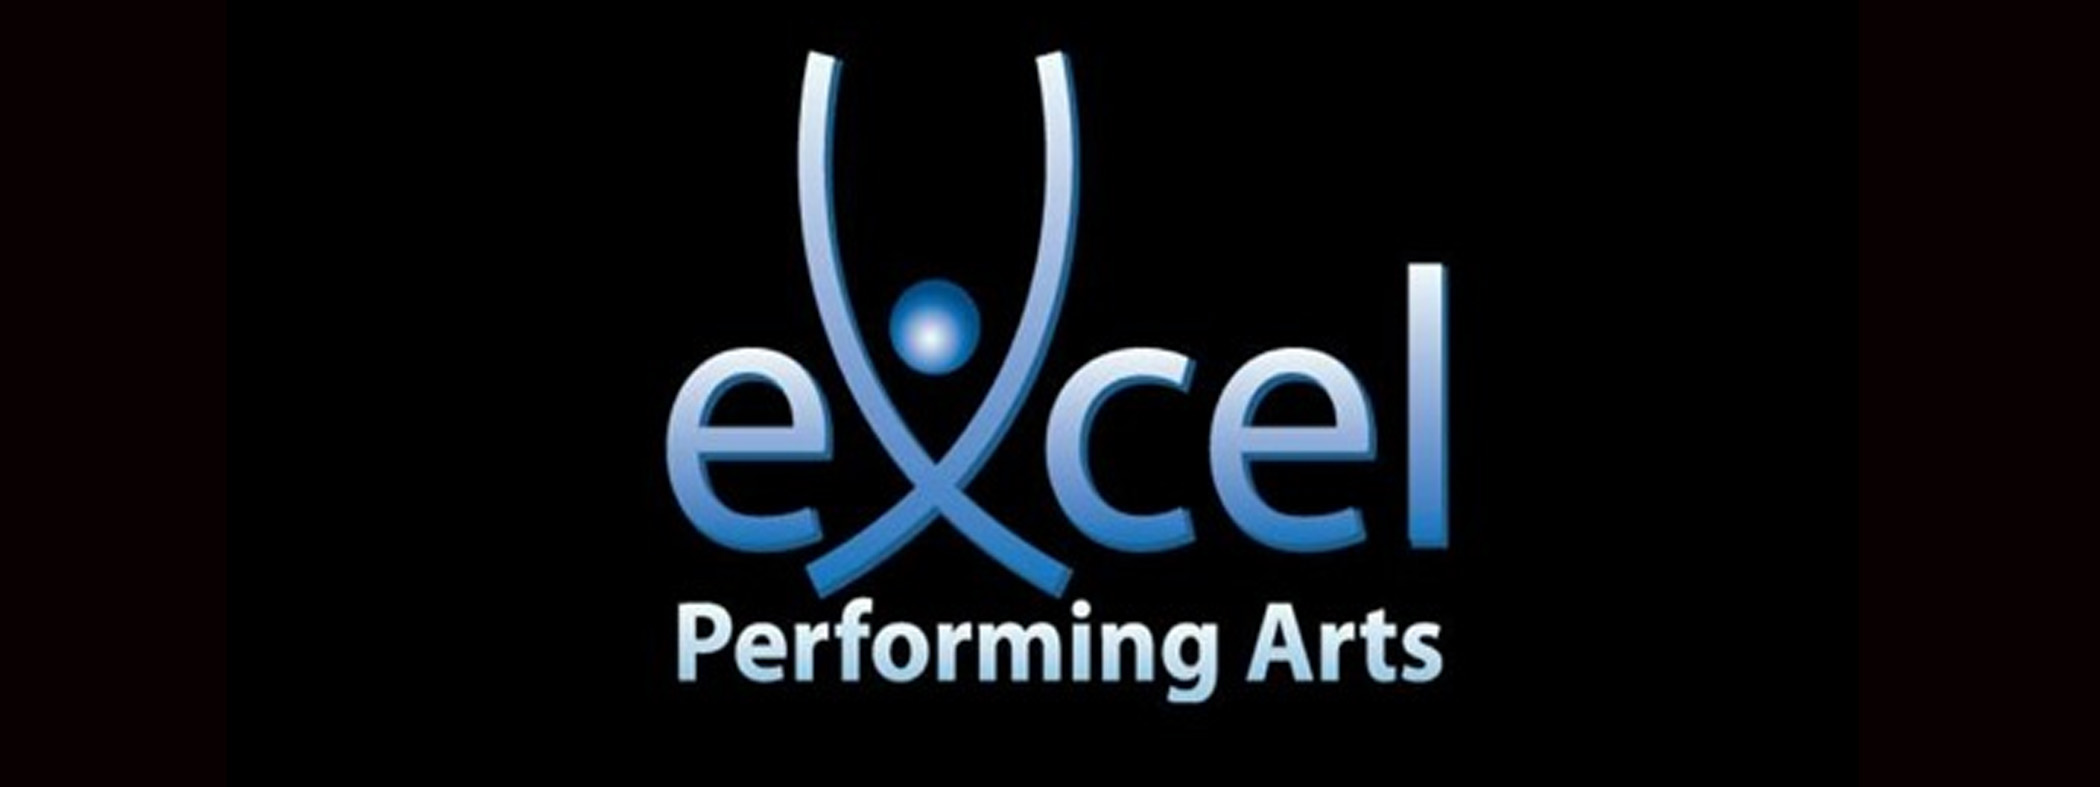 Excel Performing Arts presents 'The Celebration!'